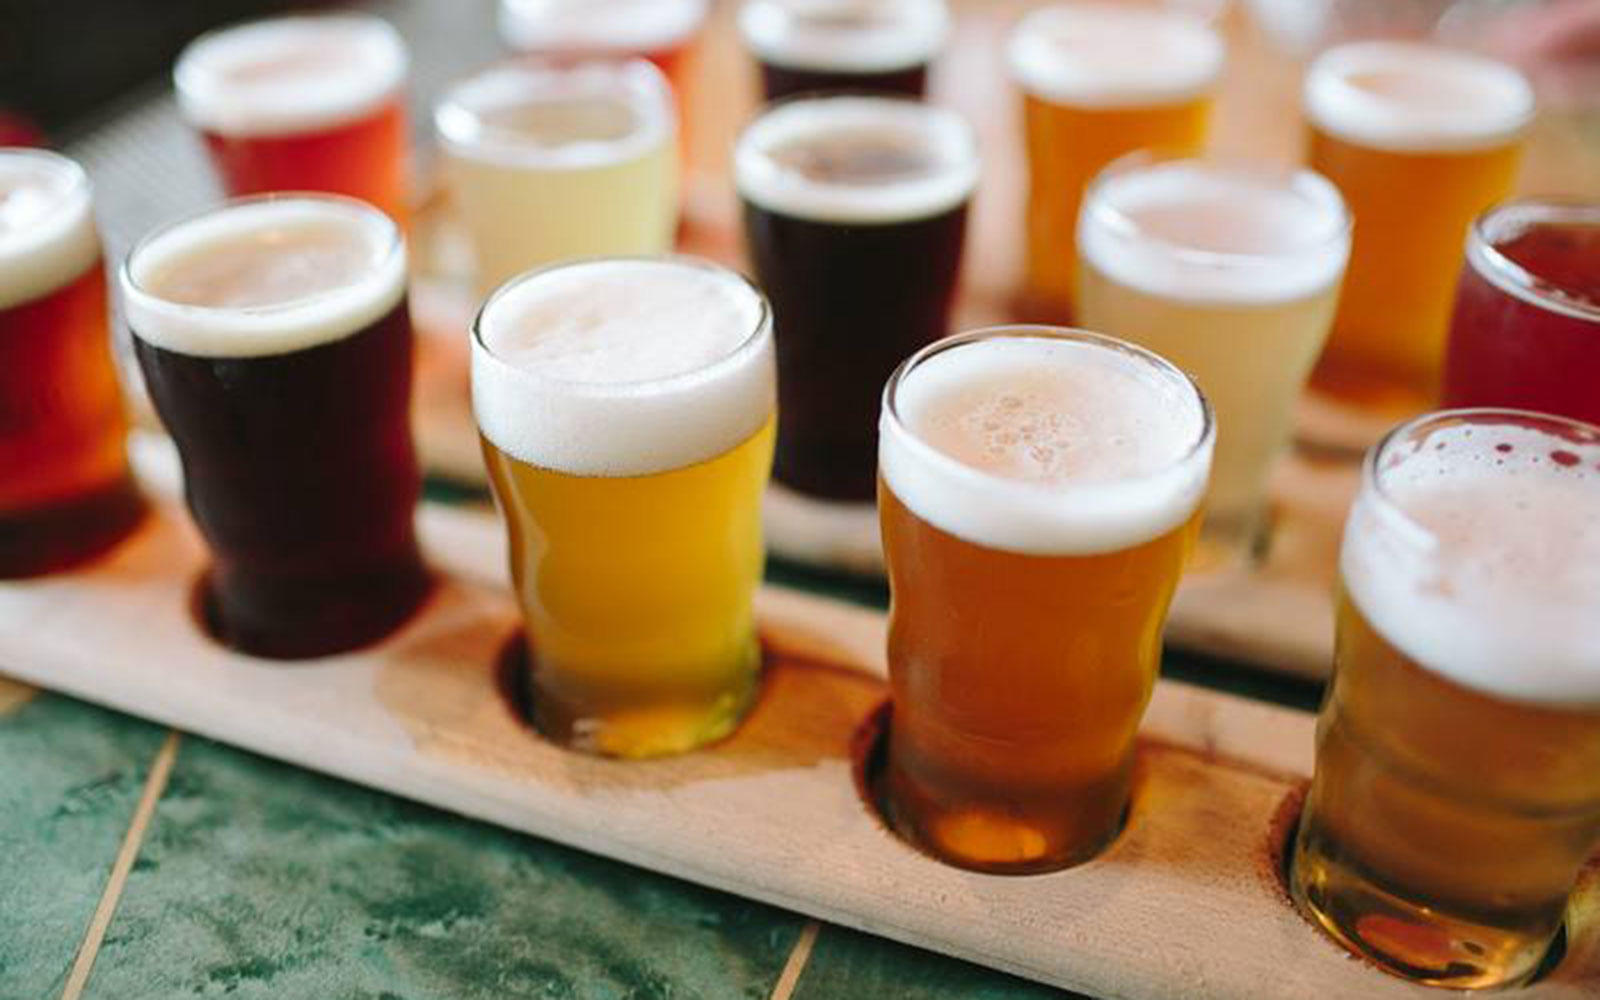 Beer Industry Contributes $15 Billion Annually to Colorado Economy